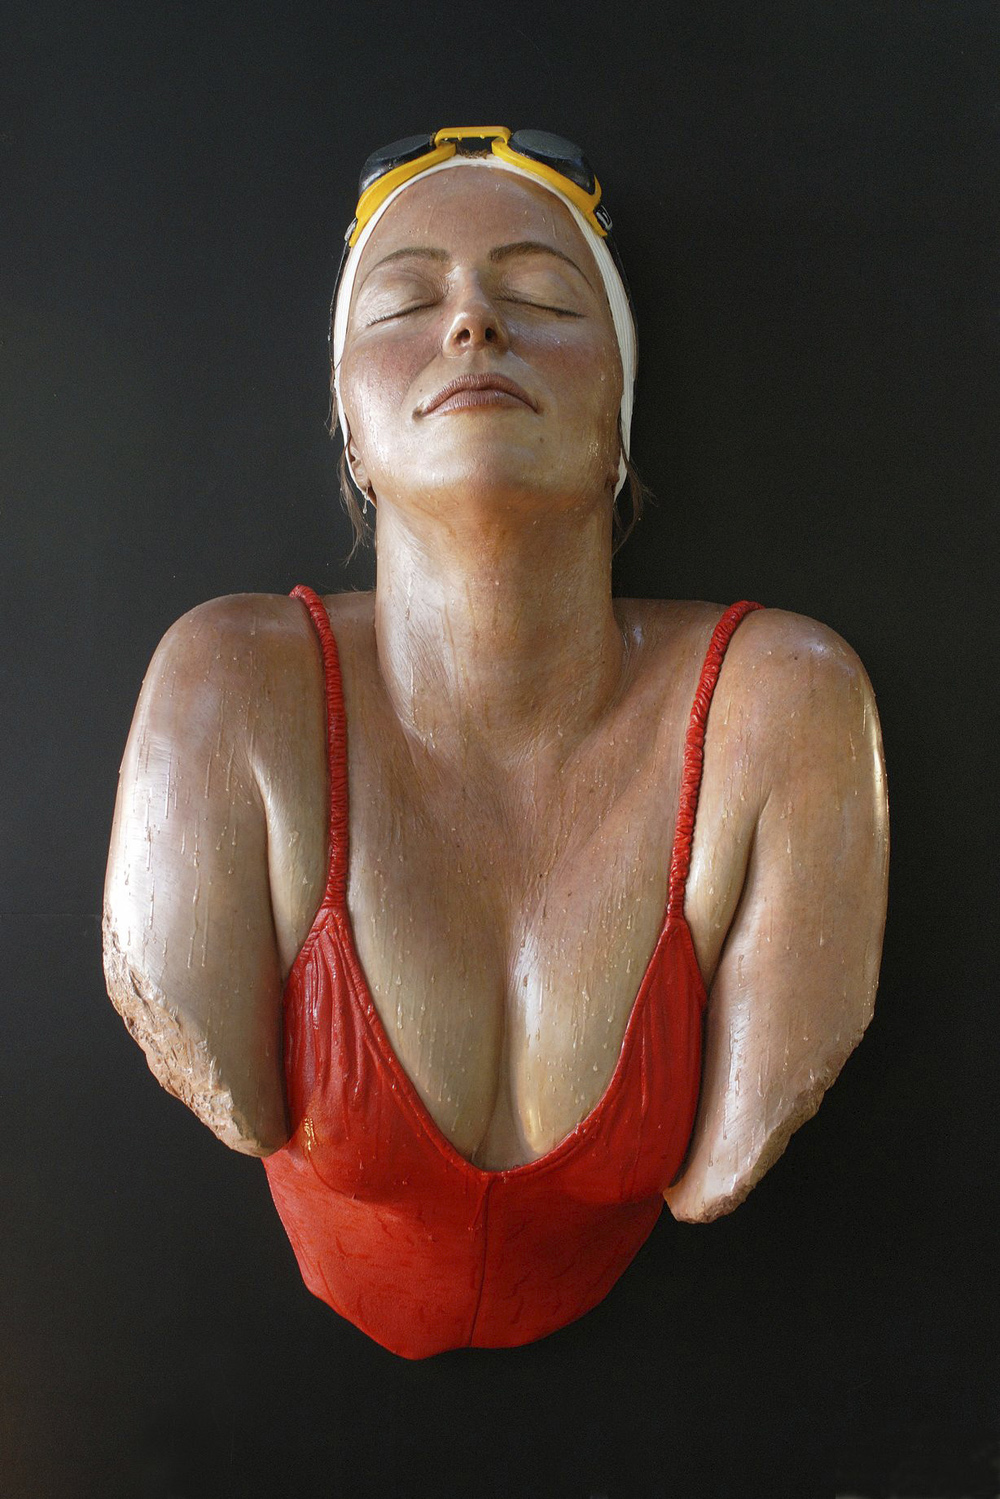 Catalina, 1981, Resin and Oil, 32 x 15 x 7 inches